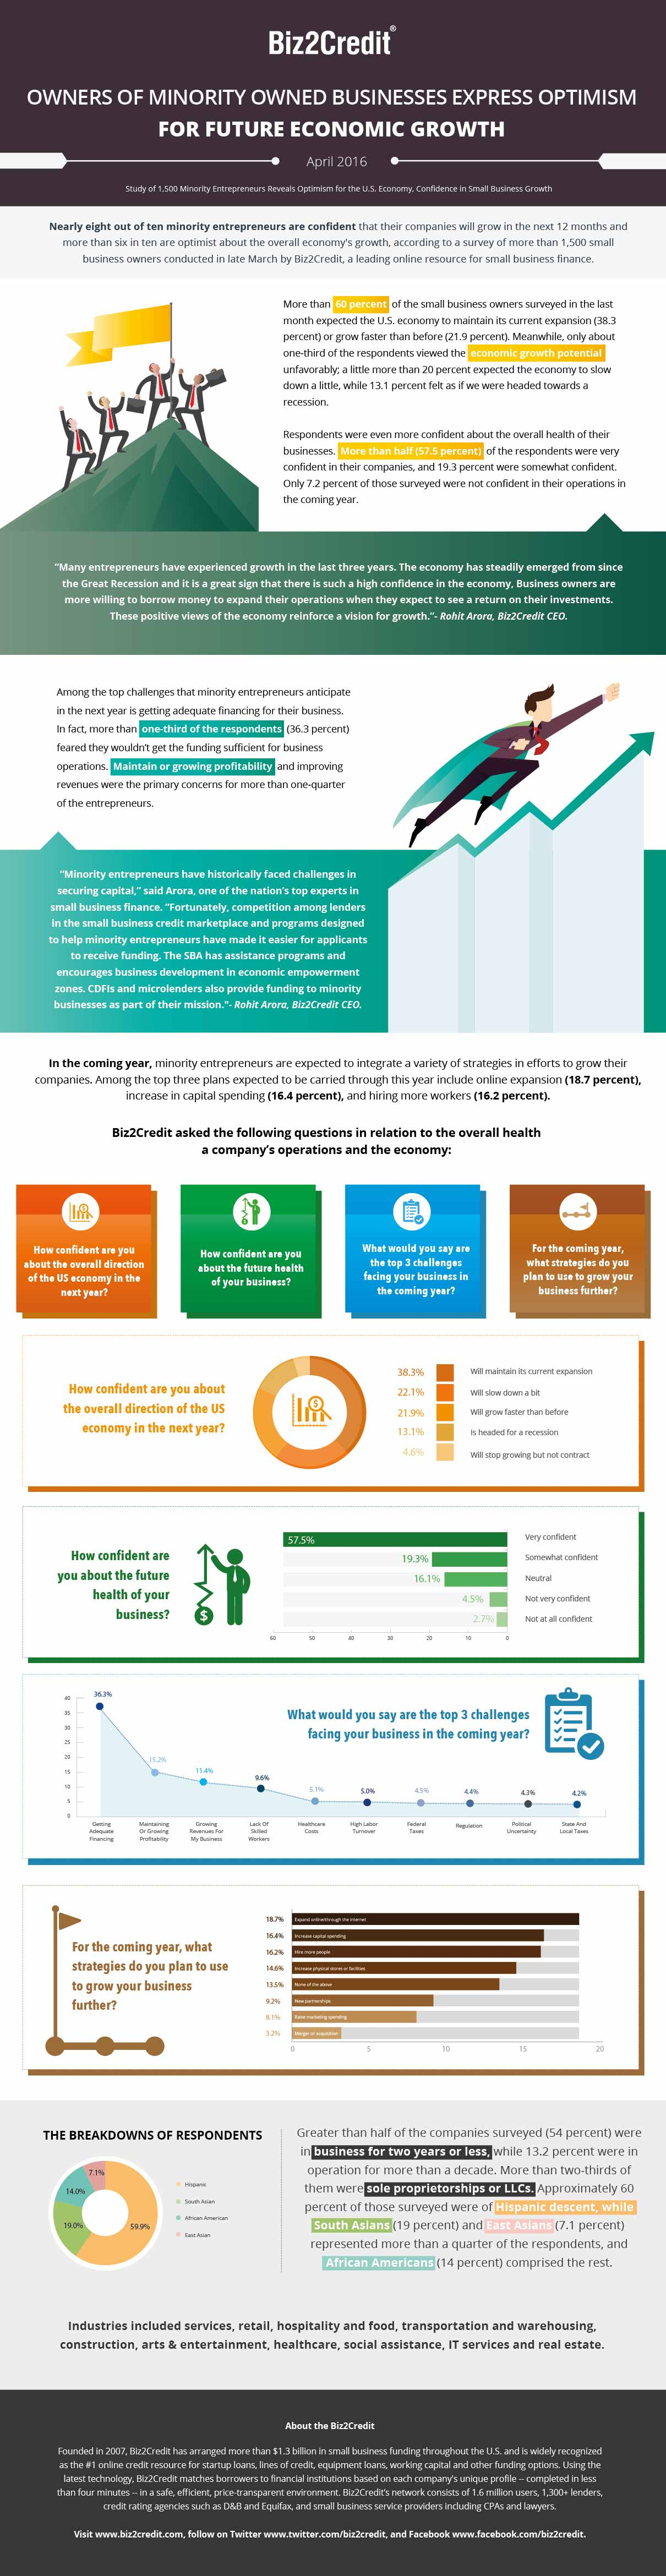 Info-graphic: Owners of Minority Owned Businesses Express Optimism for Future Economic Growth, According to Biz2Credit Study